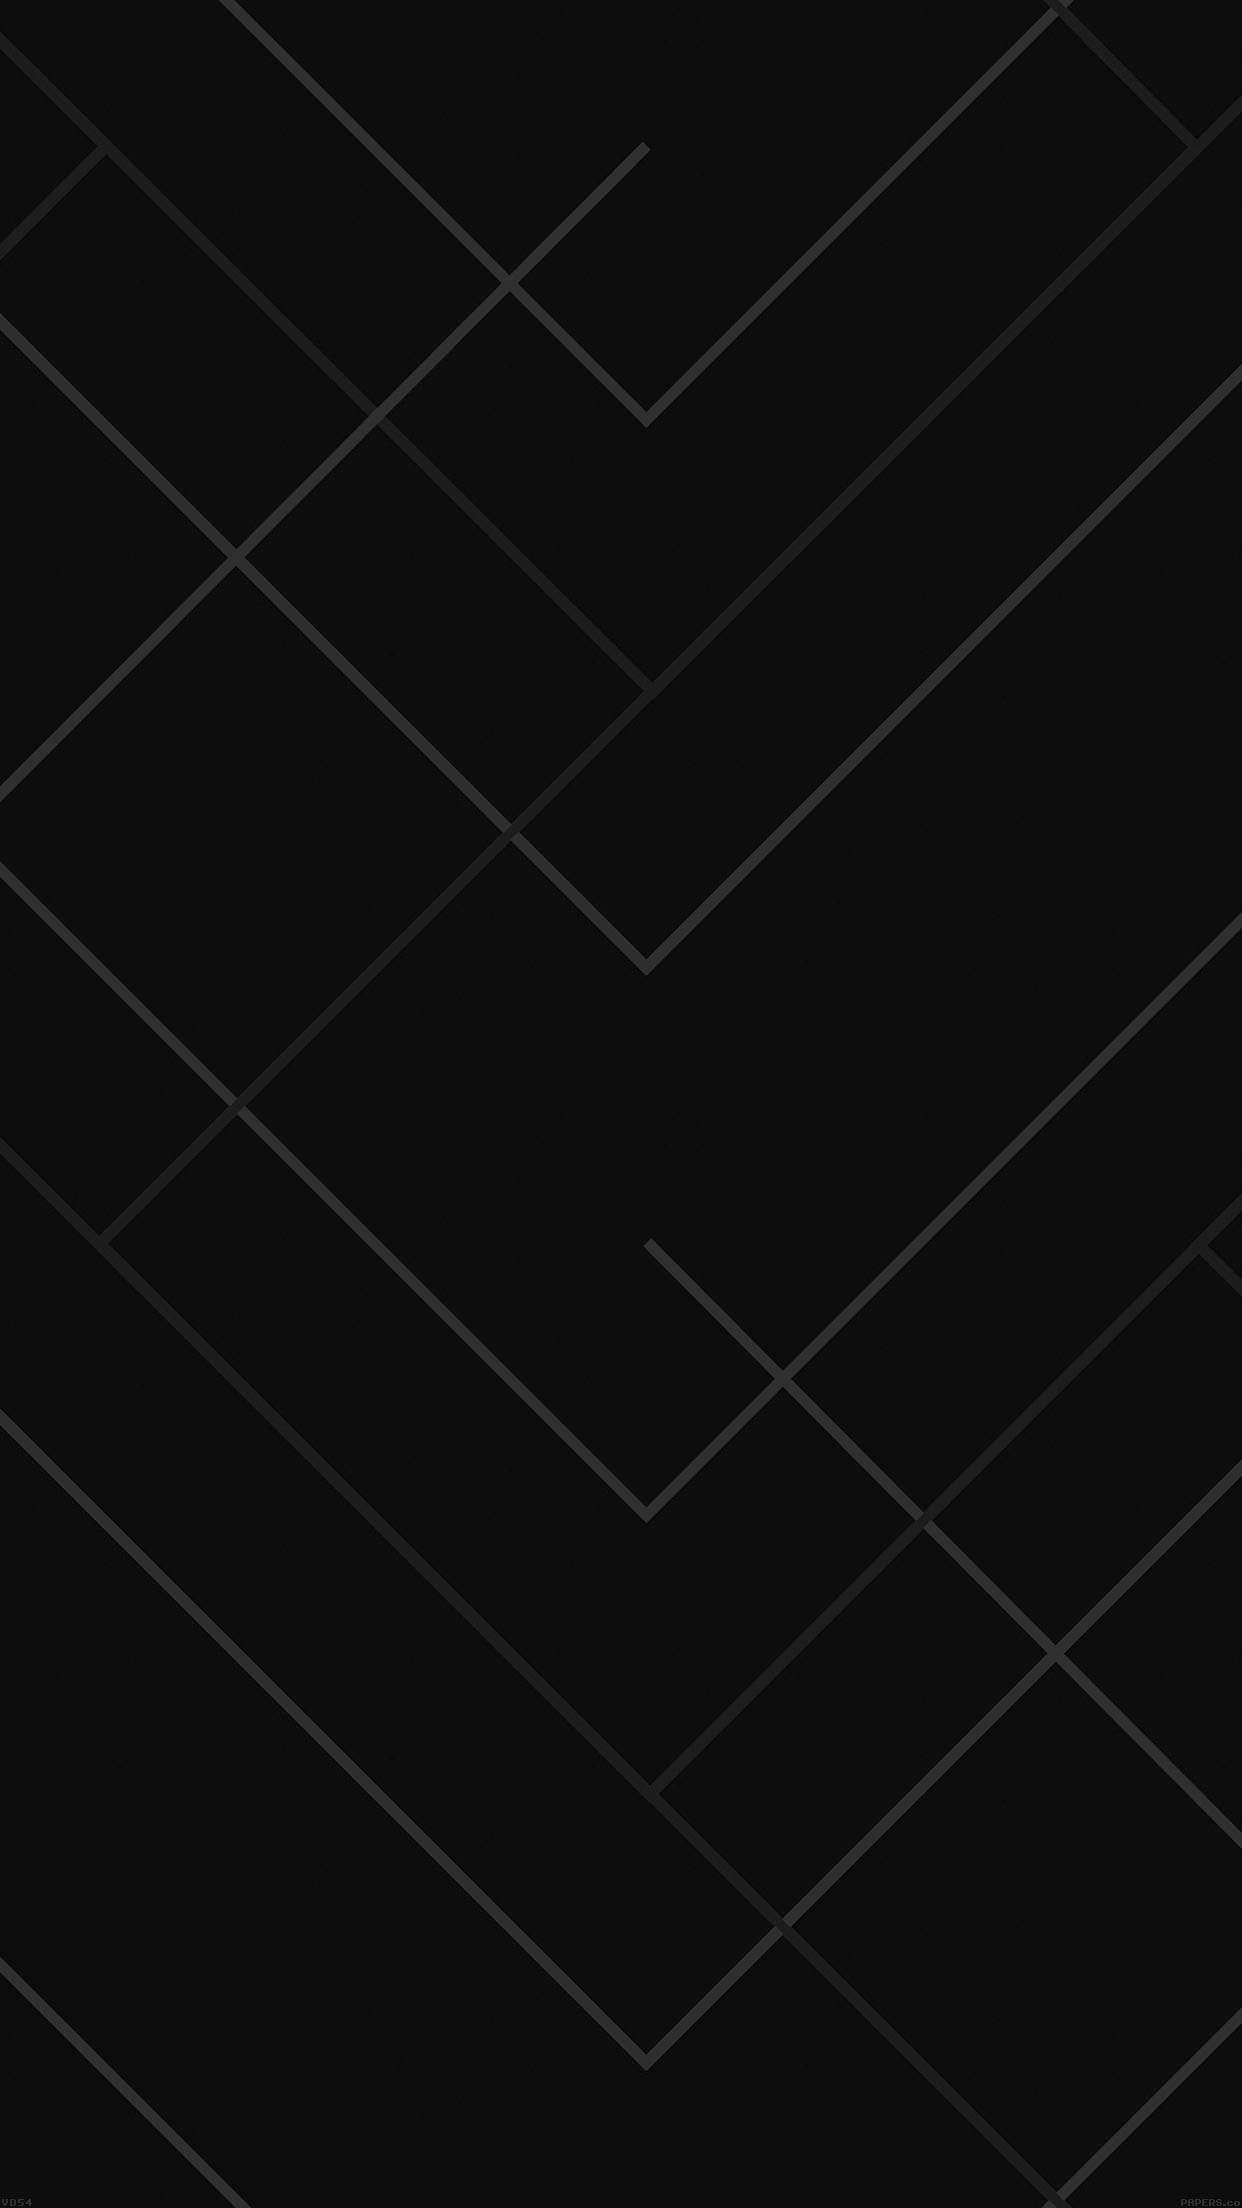 abstract-black-geometric-line-pattern-34-iphone-7-